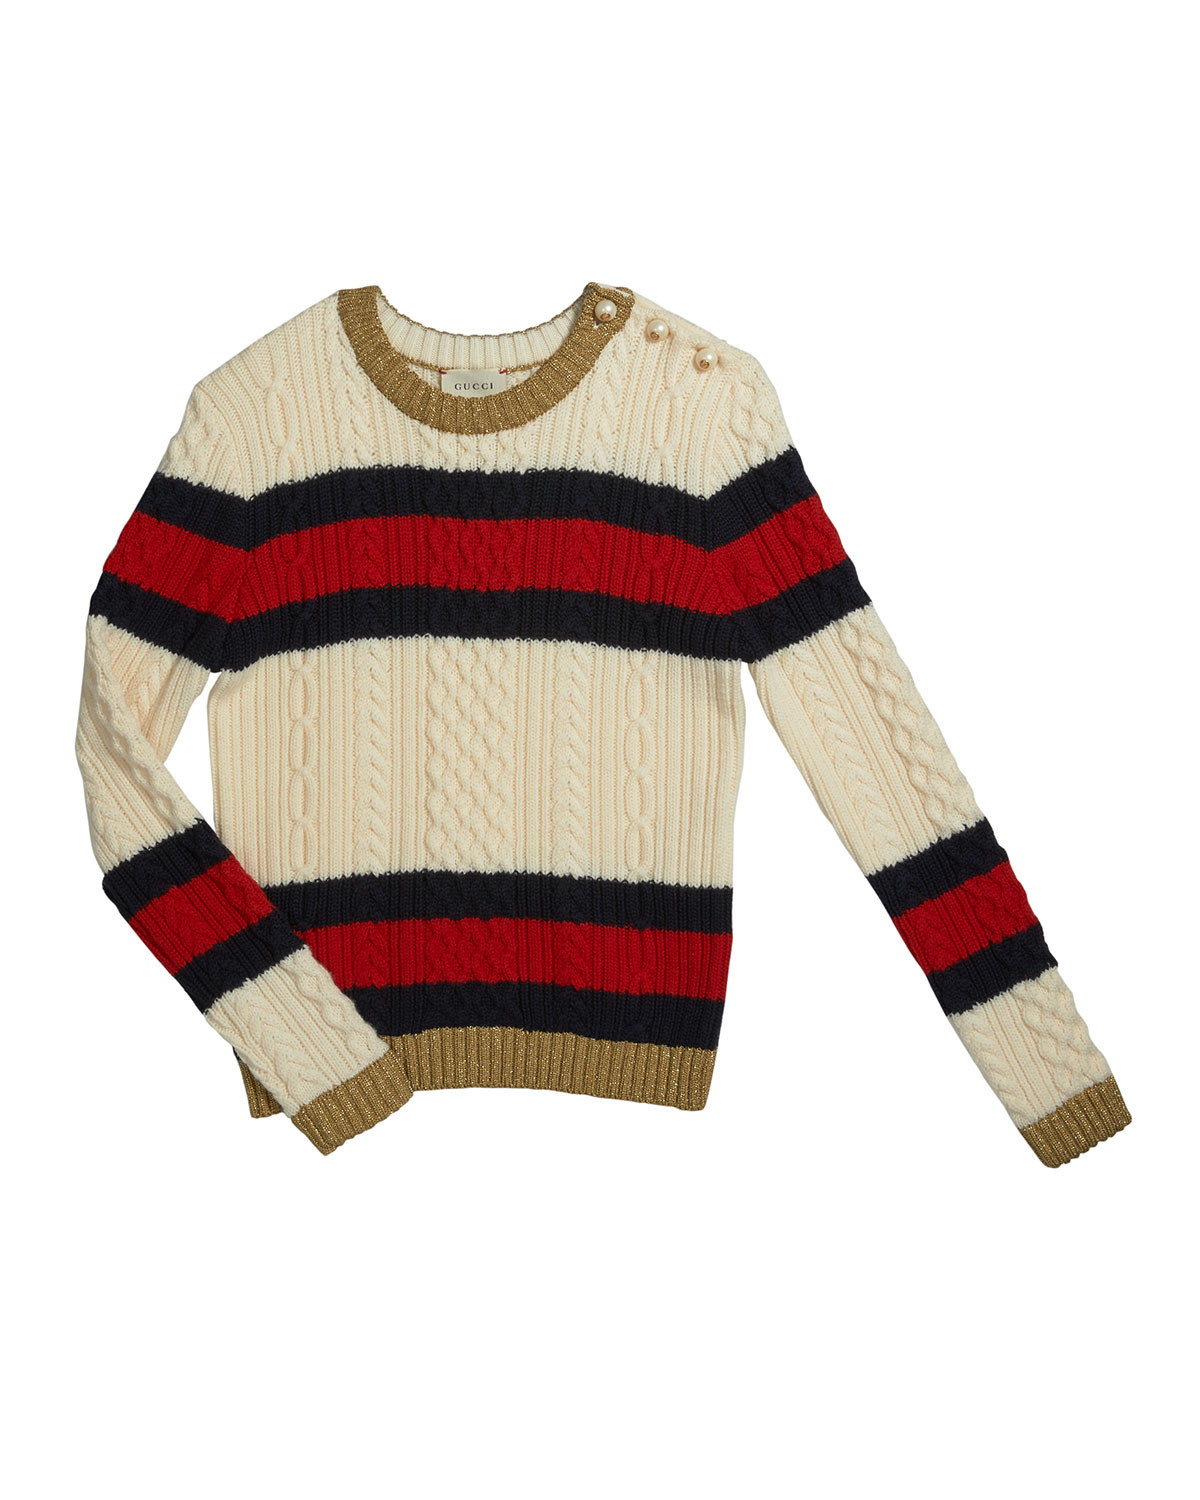 7fae49126c0 Gucci Striped Web Cable-Knit Sweater